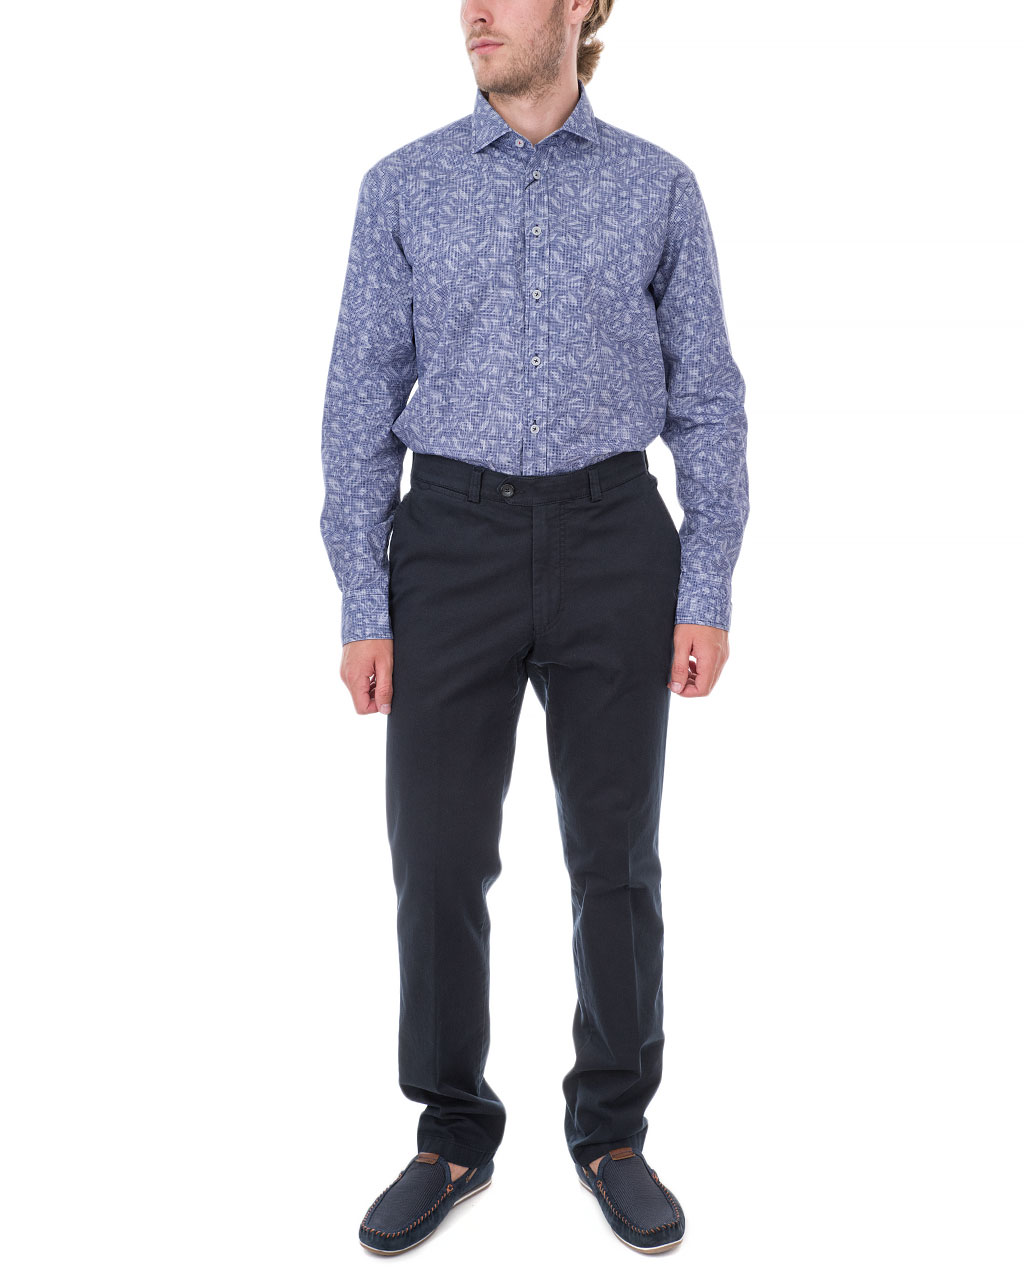 Men's trousers 410401-068/6             (2)